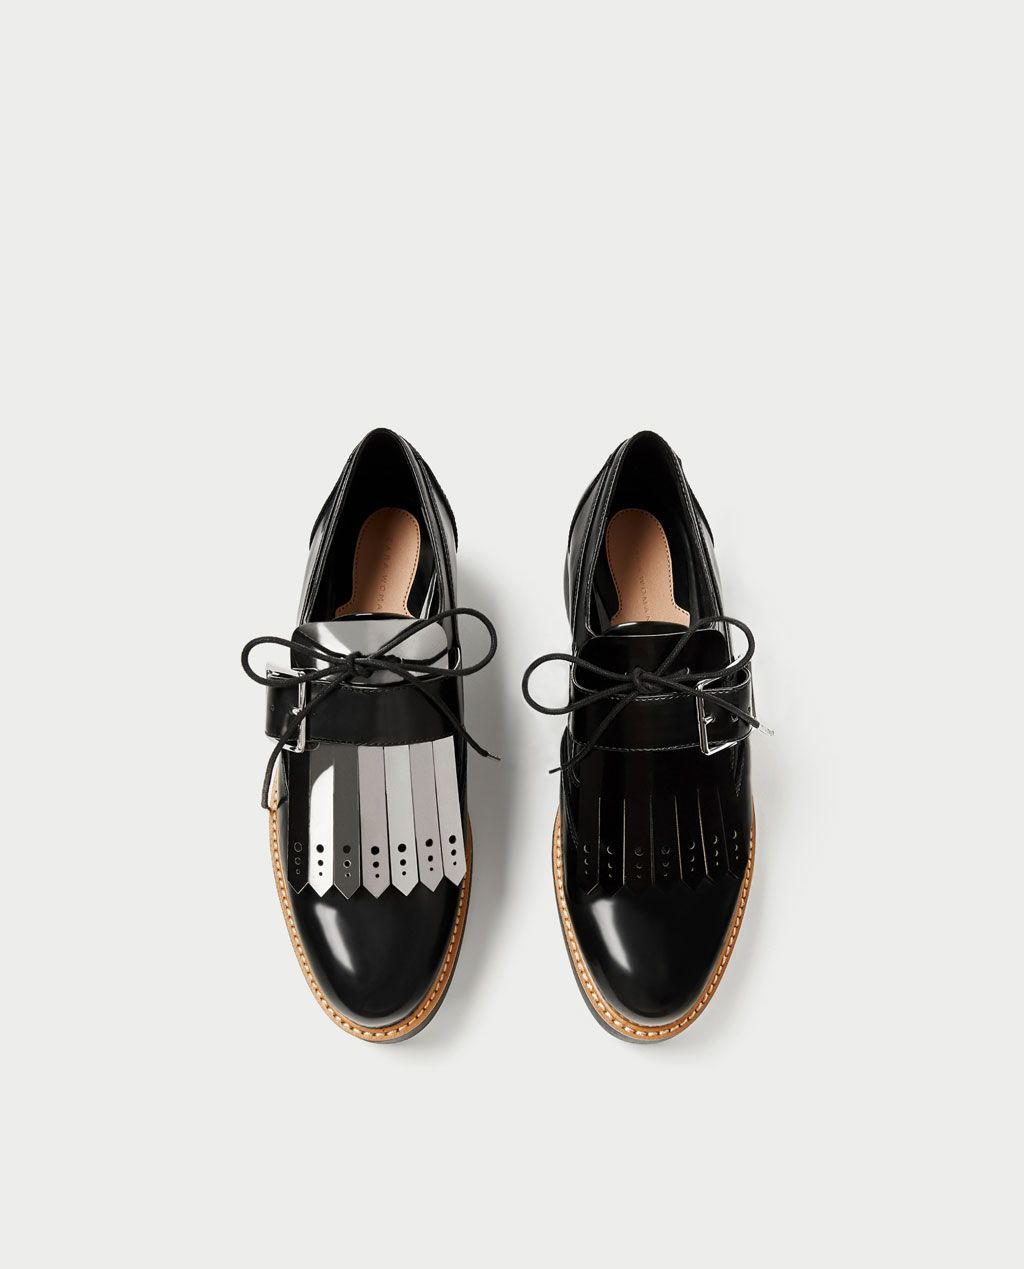 4fd6eb0fdd FLATFORM DERBY SHOES WITH REVERSIBLE FRINGE-View all-SHOES-WOMAN ...